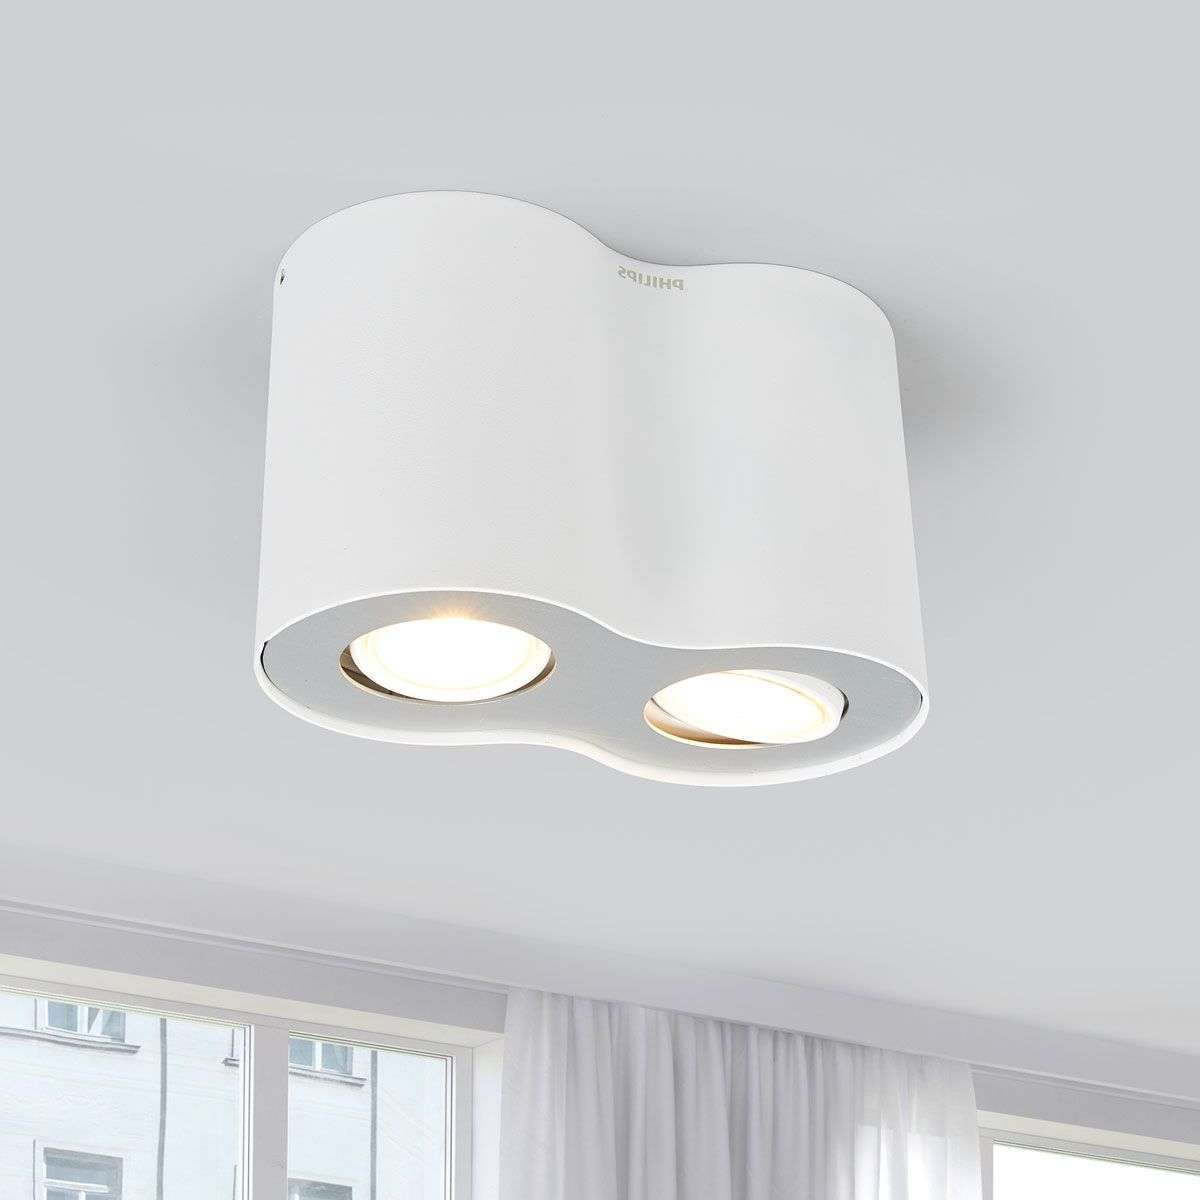 2 bulb led surface mounted ceiling light pillar lights 2 bulb led surface mounted ceiling light pillar 7531895 31 aloadofball Image collections